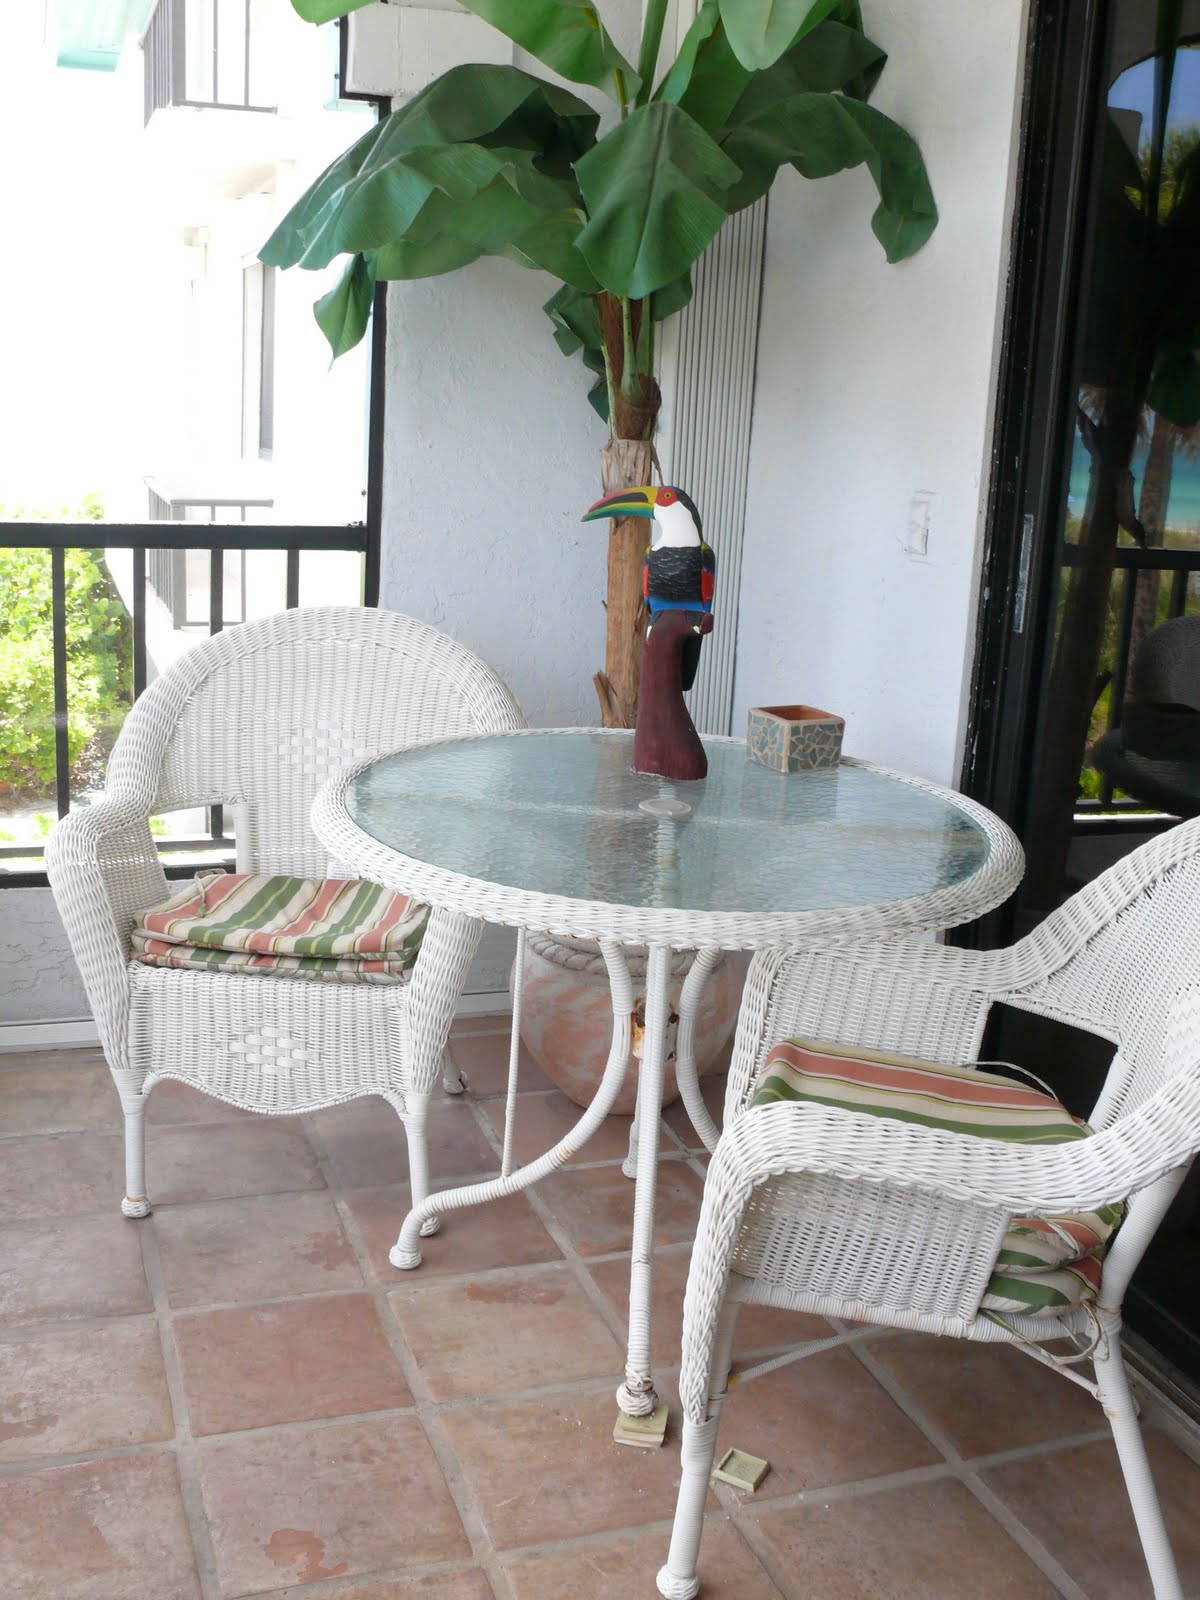 All Condo Contents Must Go Wicker Outdoor Table And 2 Chair